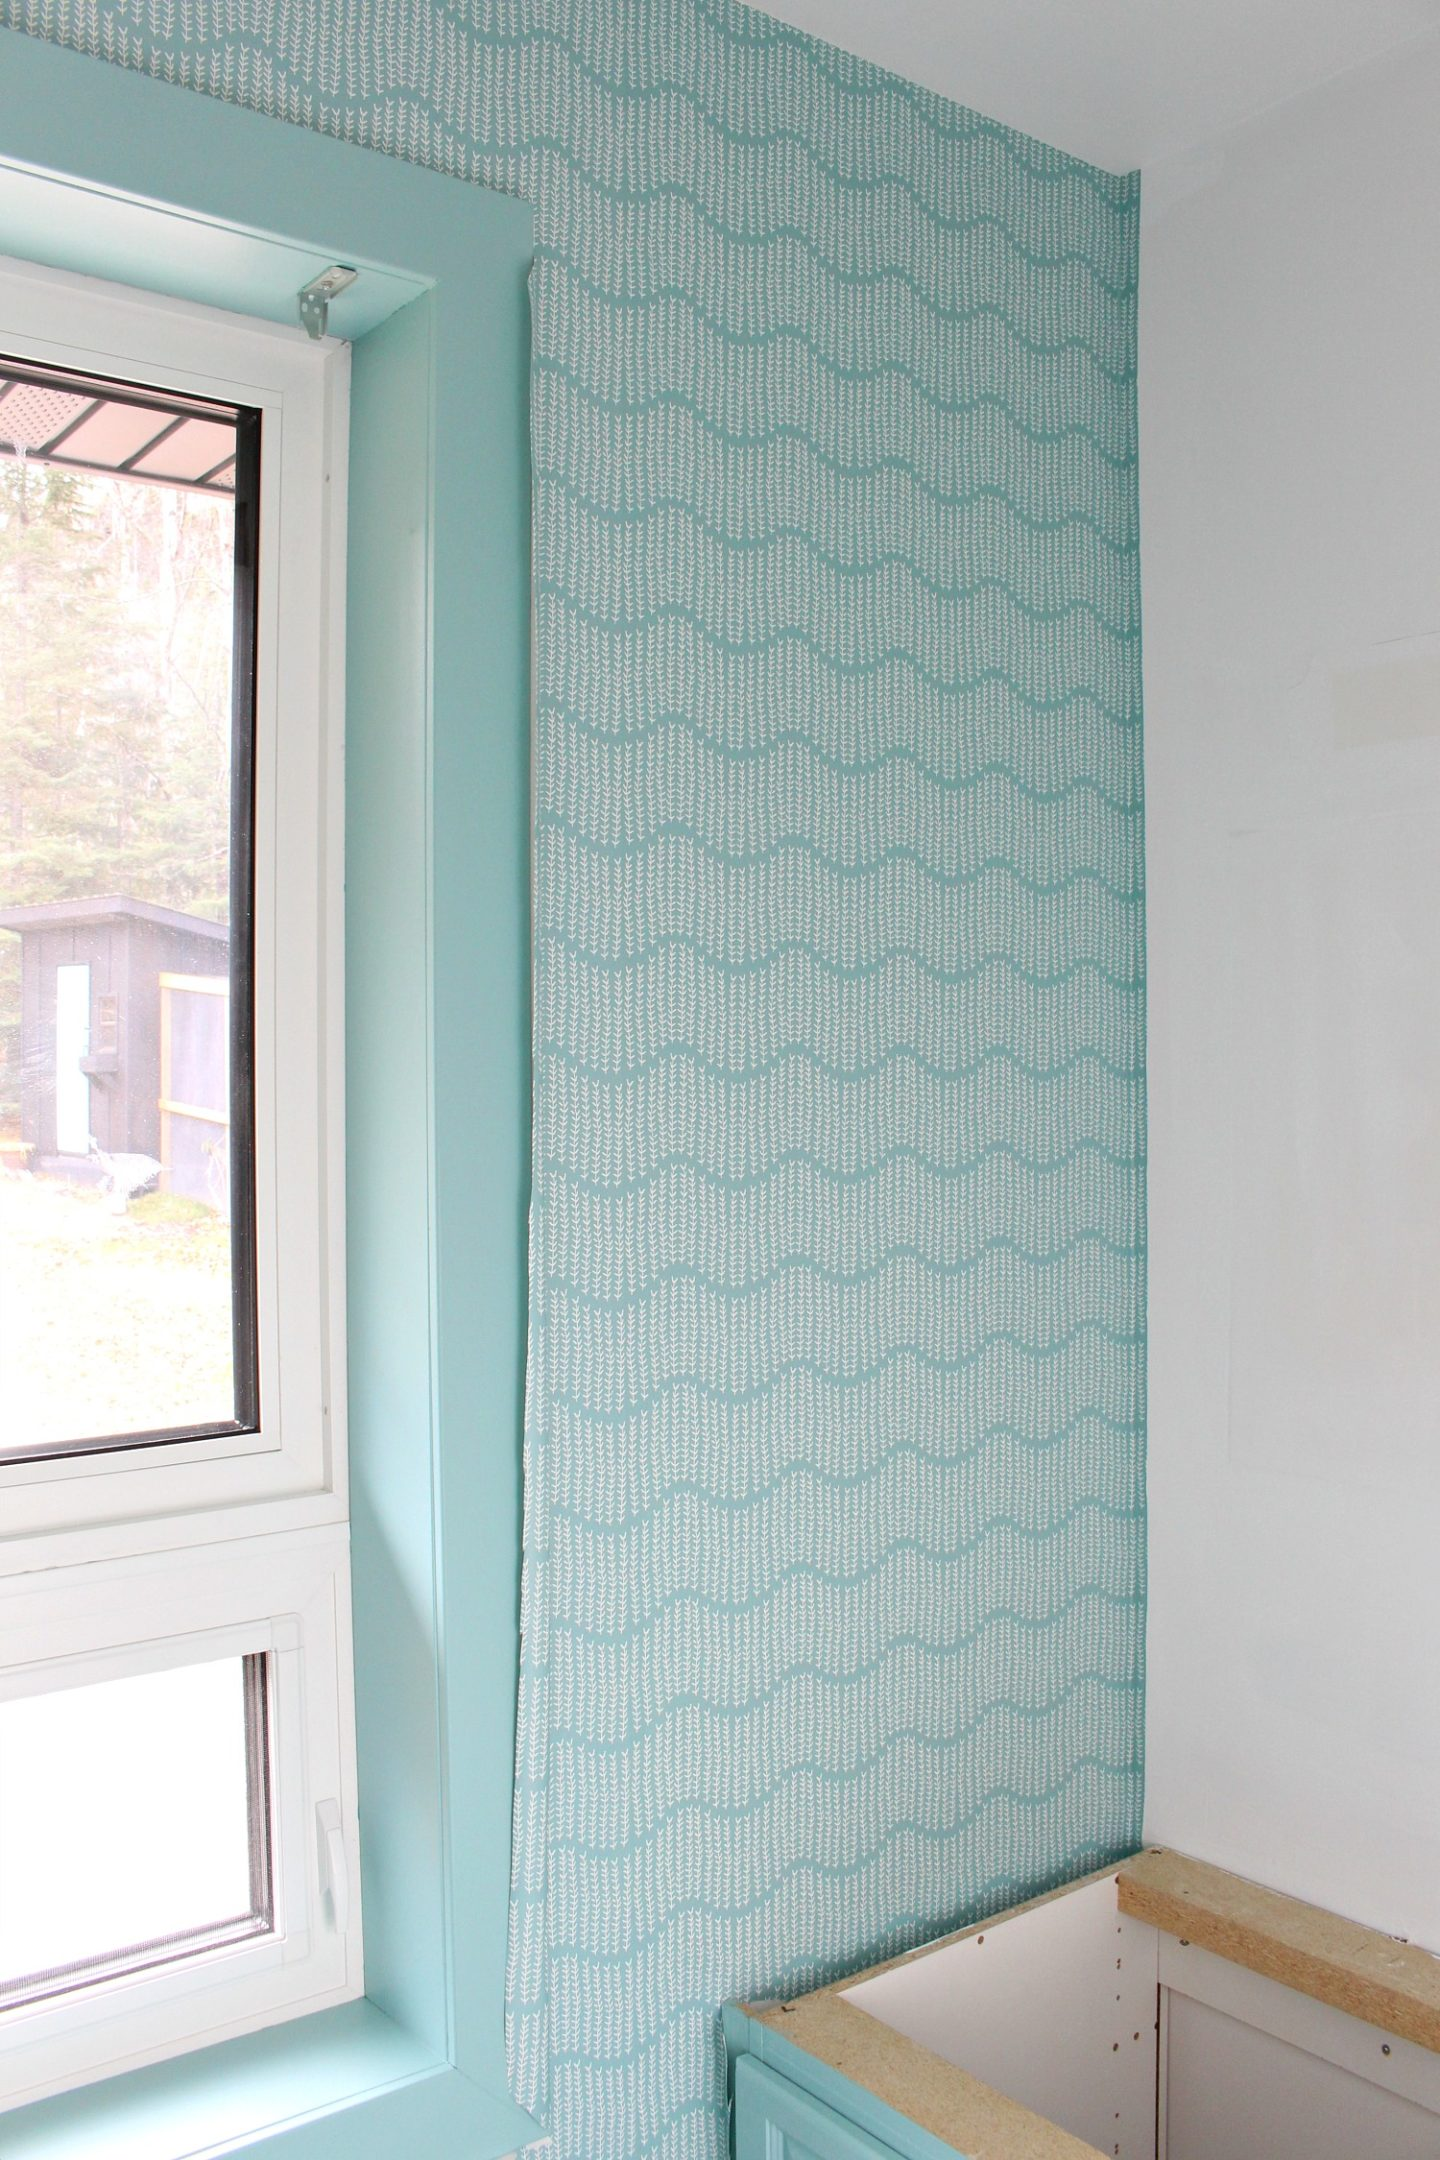 DIY Wallpapering for the First Time | Spoonflower Prepasted Removable Wallpaper Review